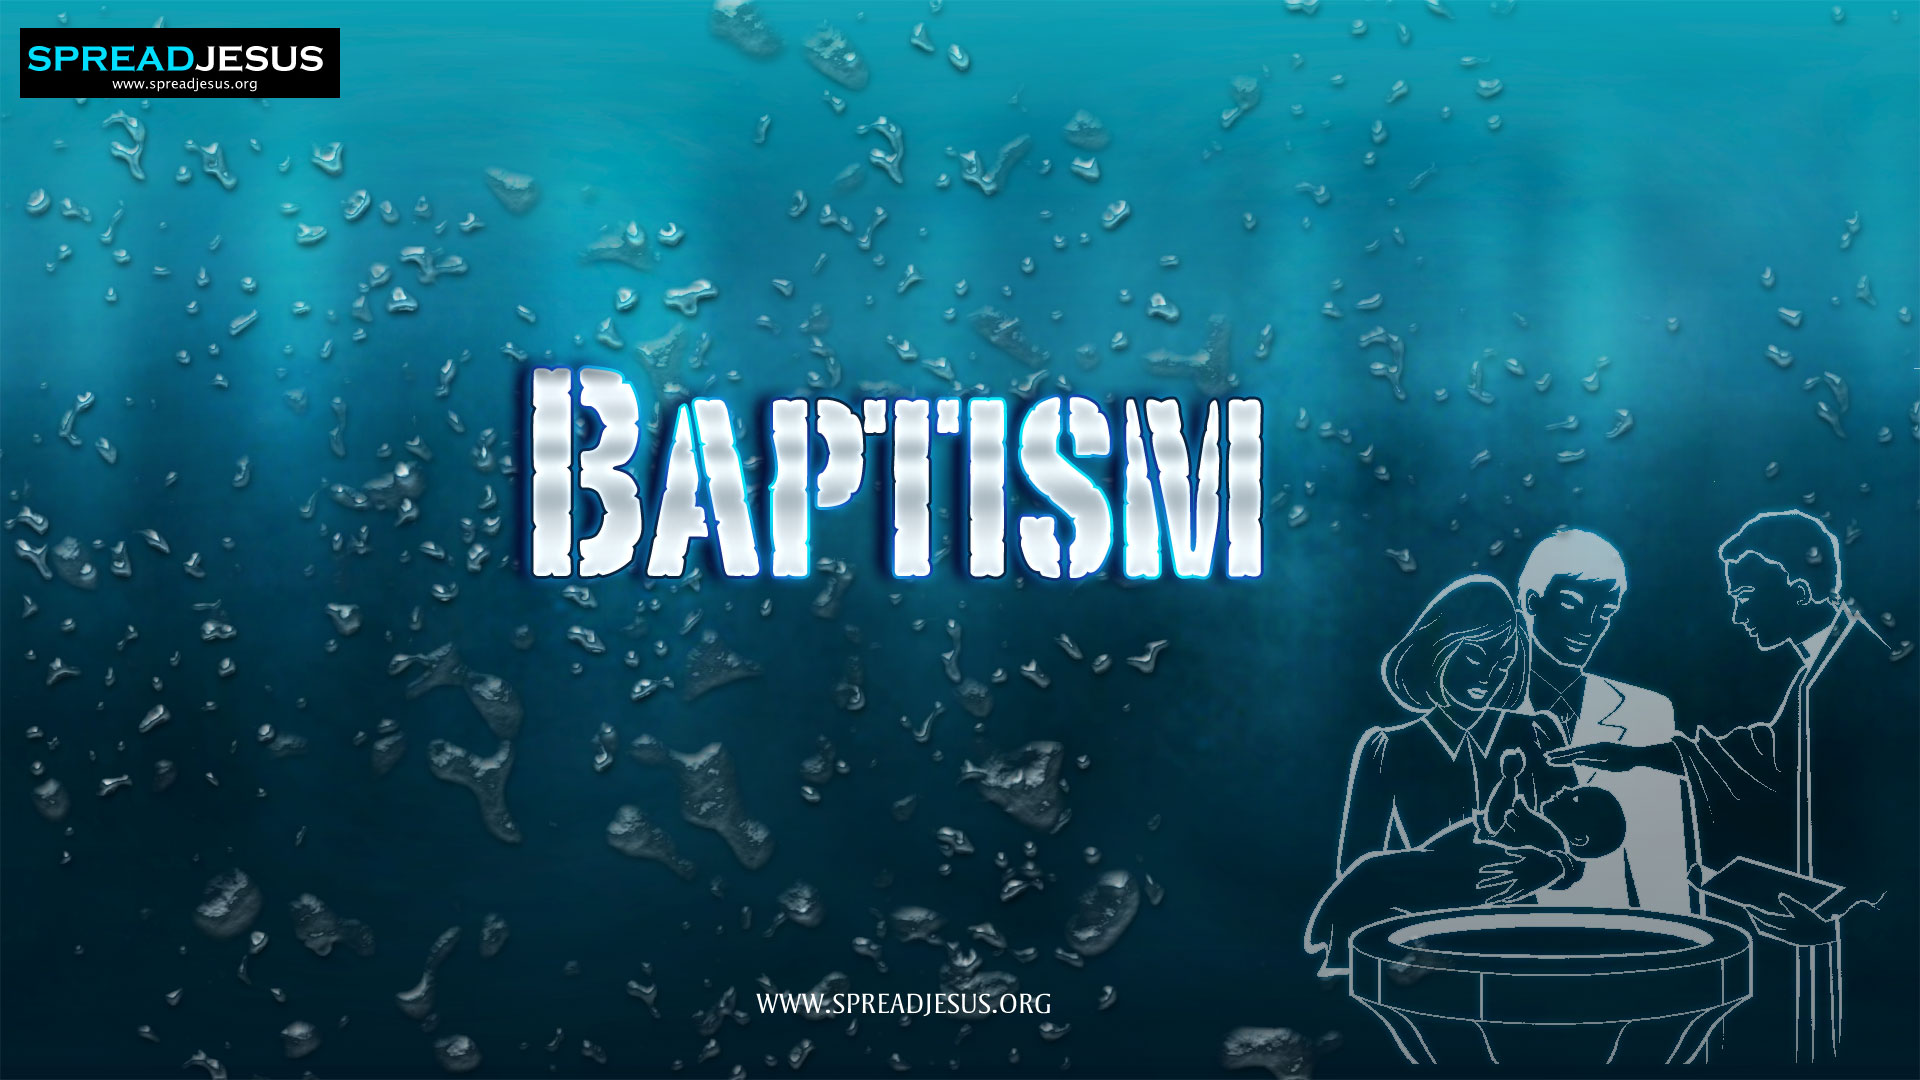 BAPTISM:Through Baptism, we receive the gift of the new birth.:The seven sacraments of the church